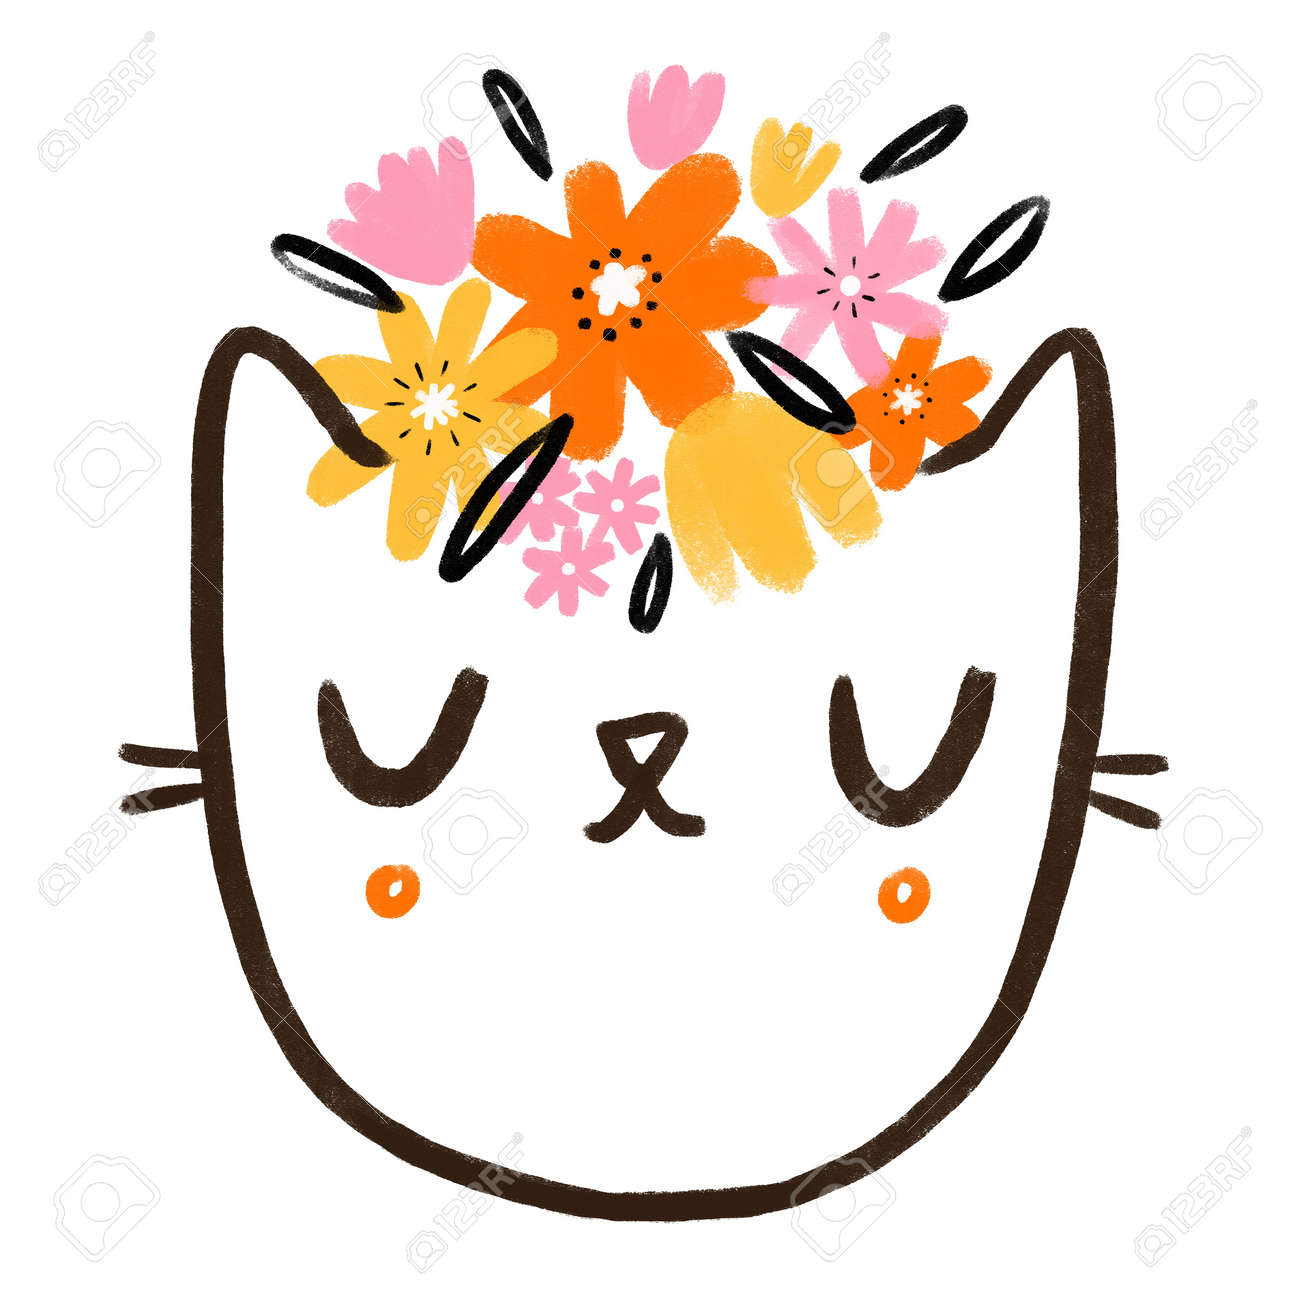 Kitty face with wild flowers, abstract cute cartoon doodle illustration, isolated on white background - 166198646